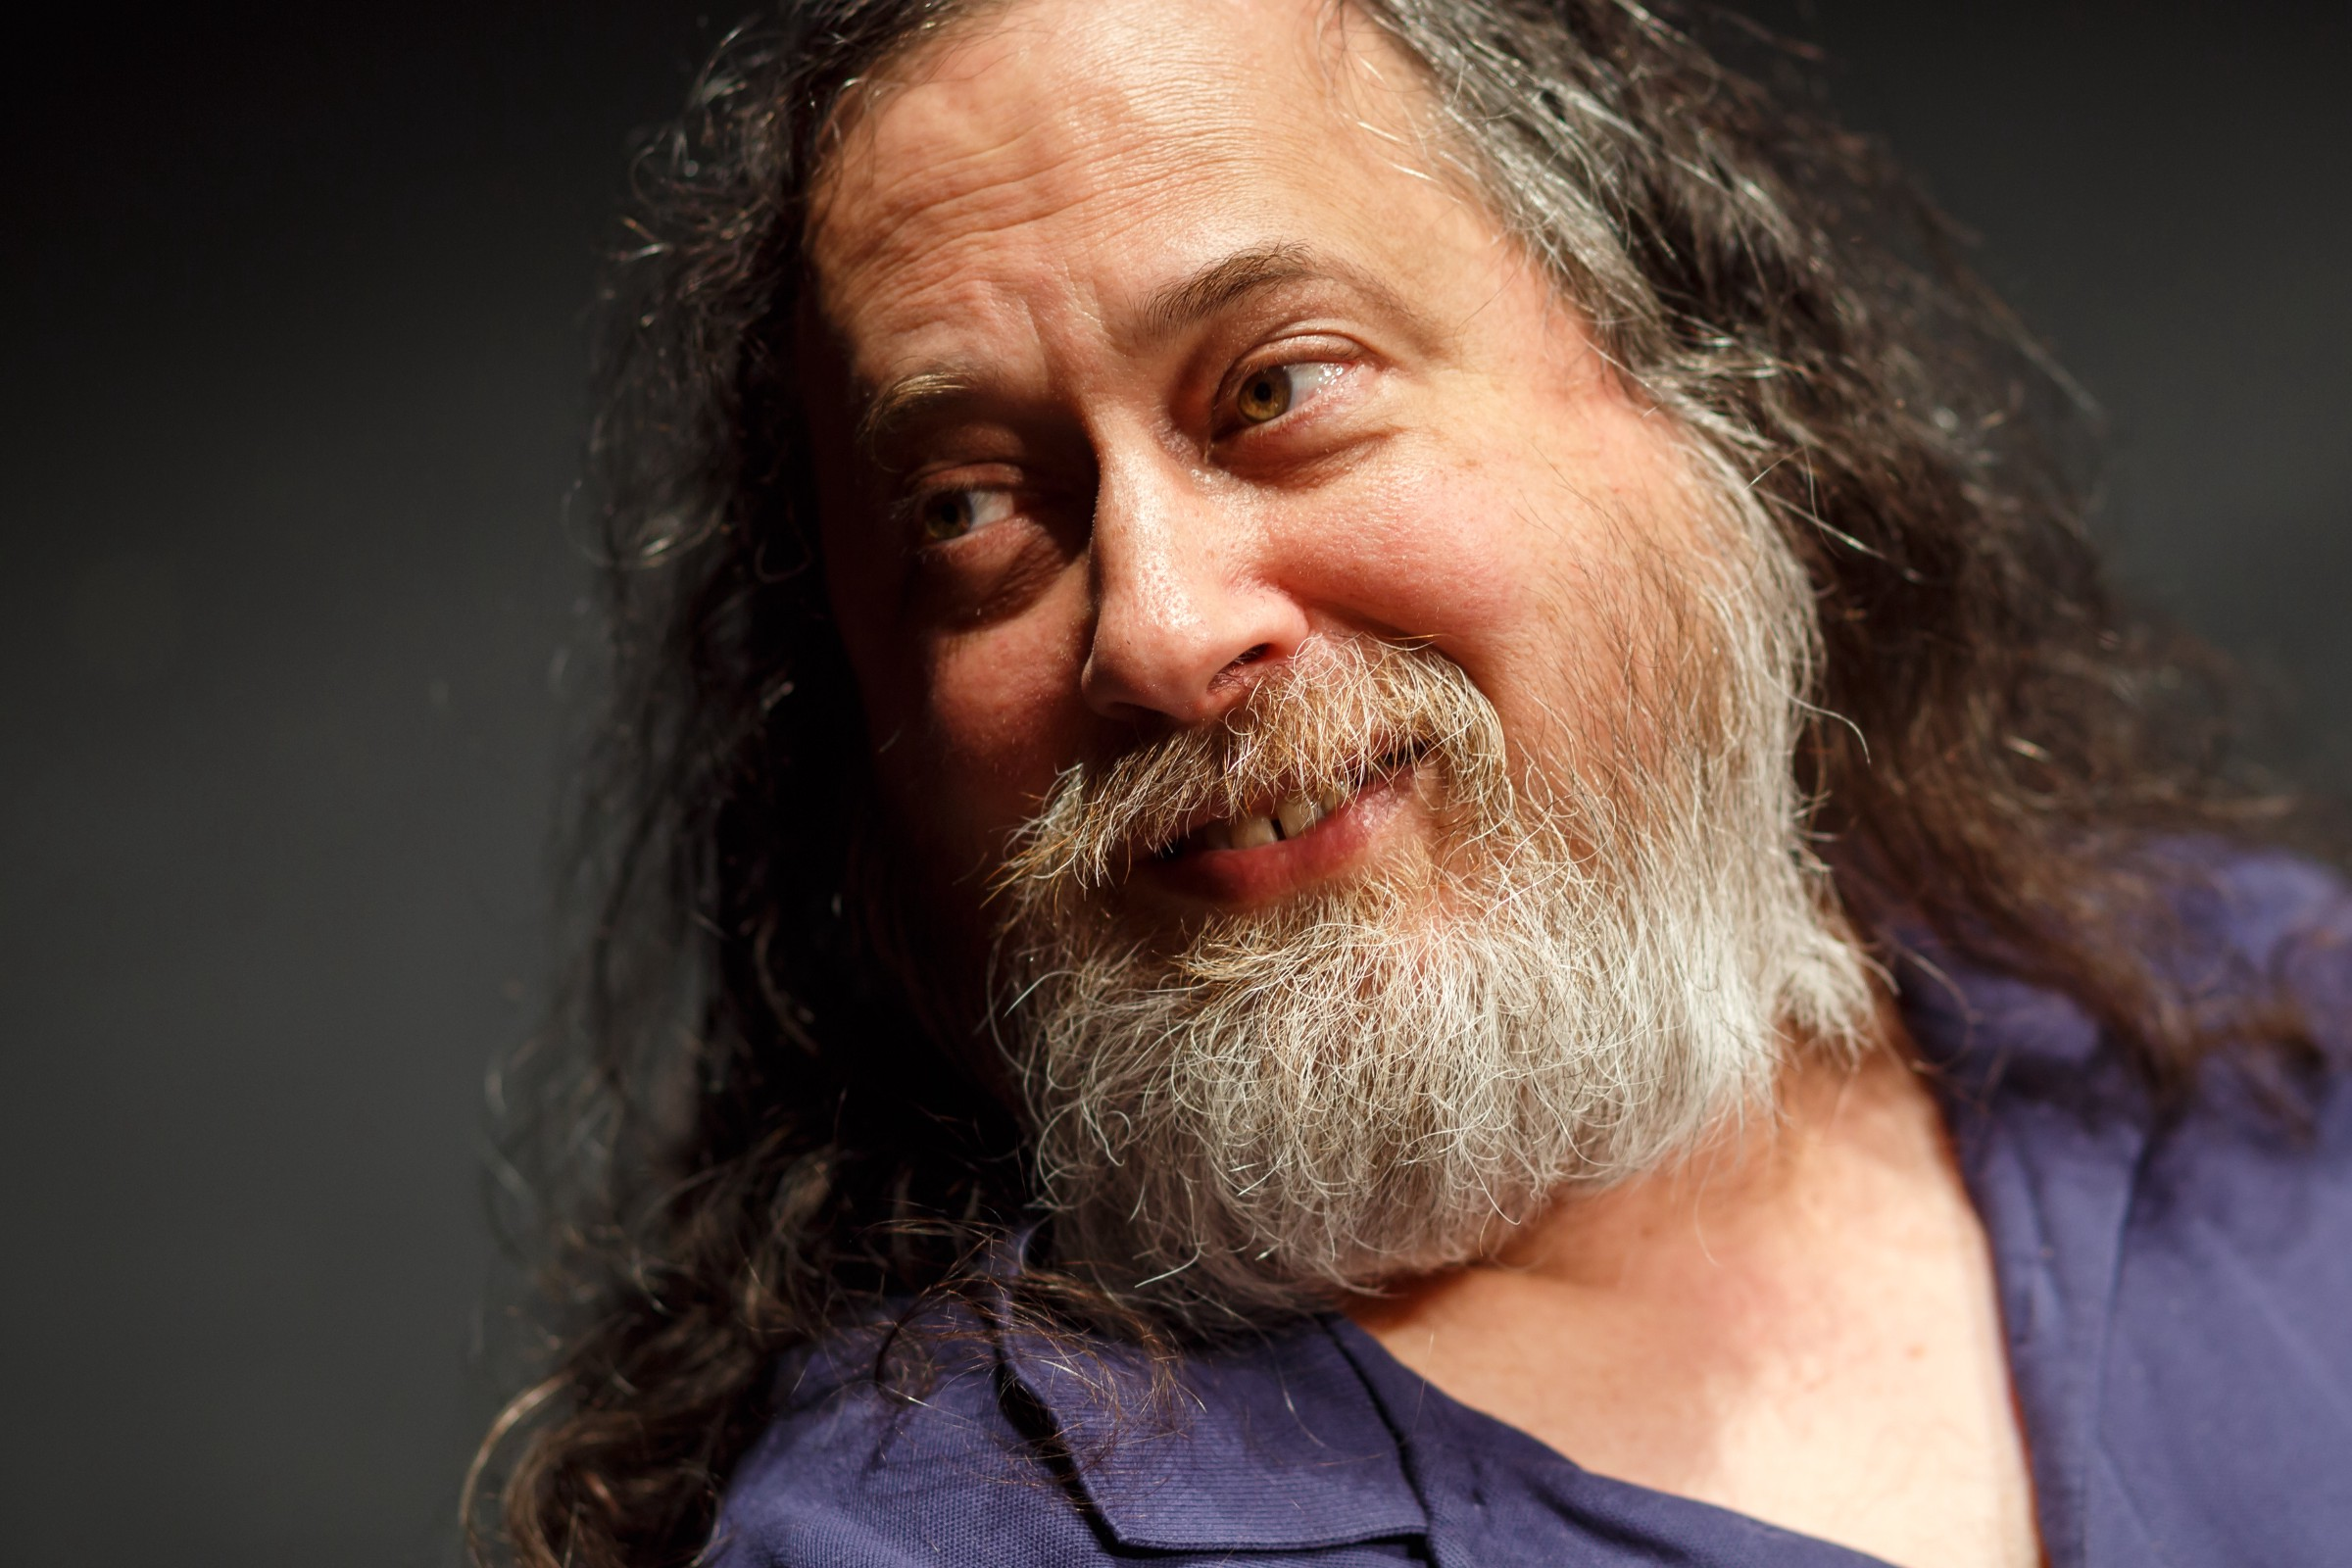 /richard-stallman-future-of-software-innovation-4e591fa93d7f feature image